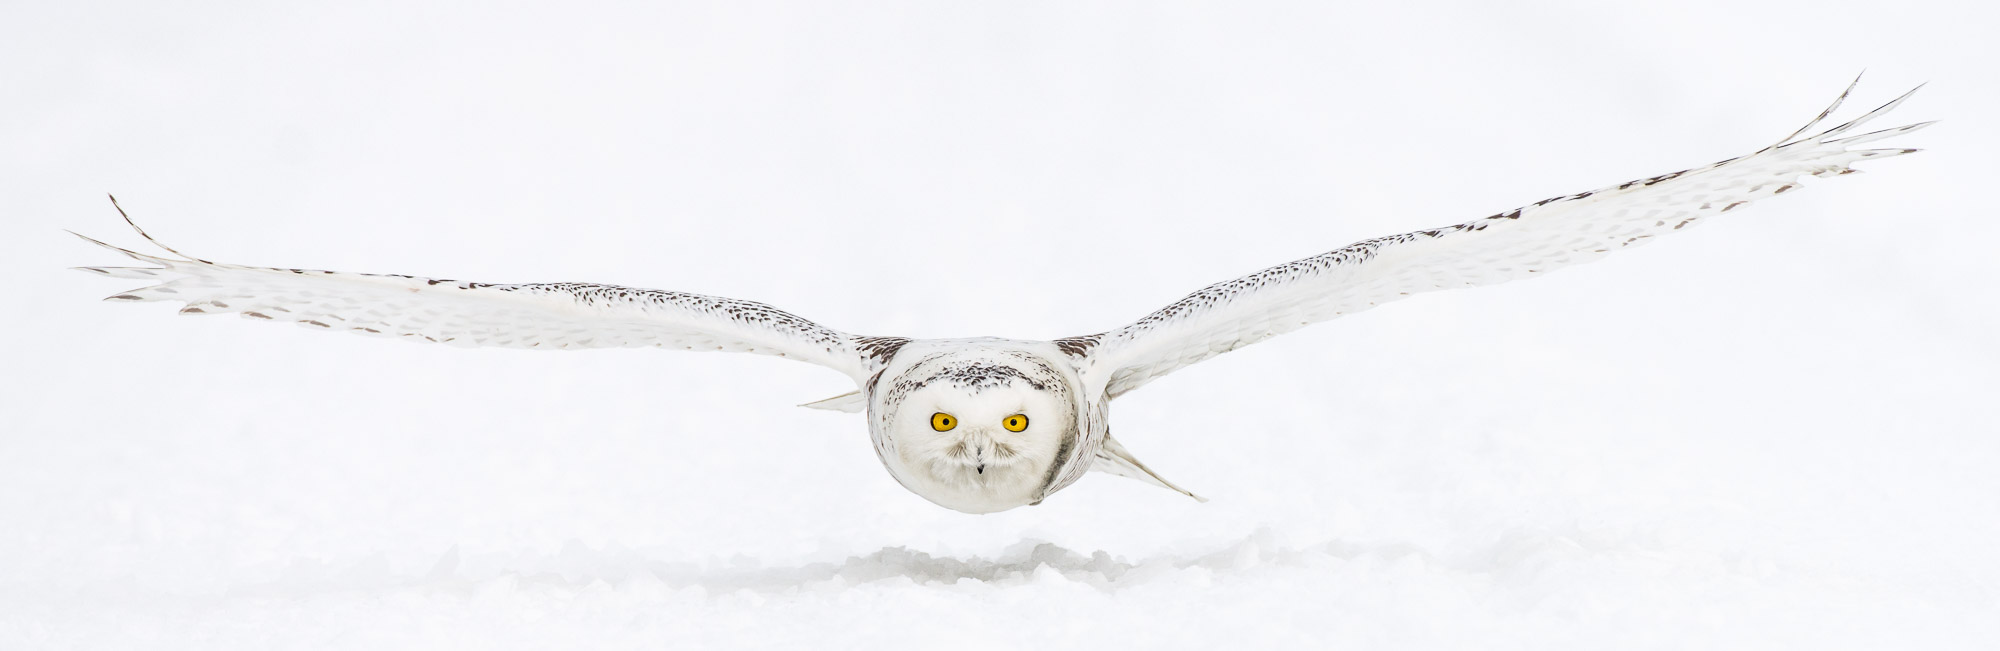 Snowy Owl flying over snow - Stayner, Ontario, Canada